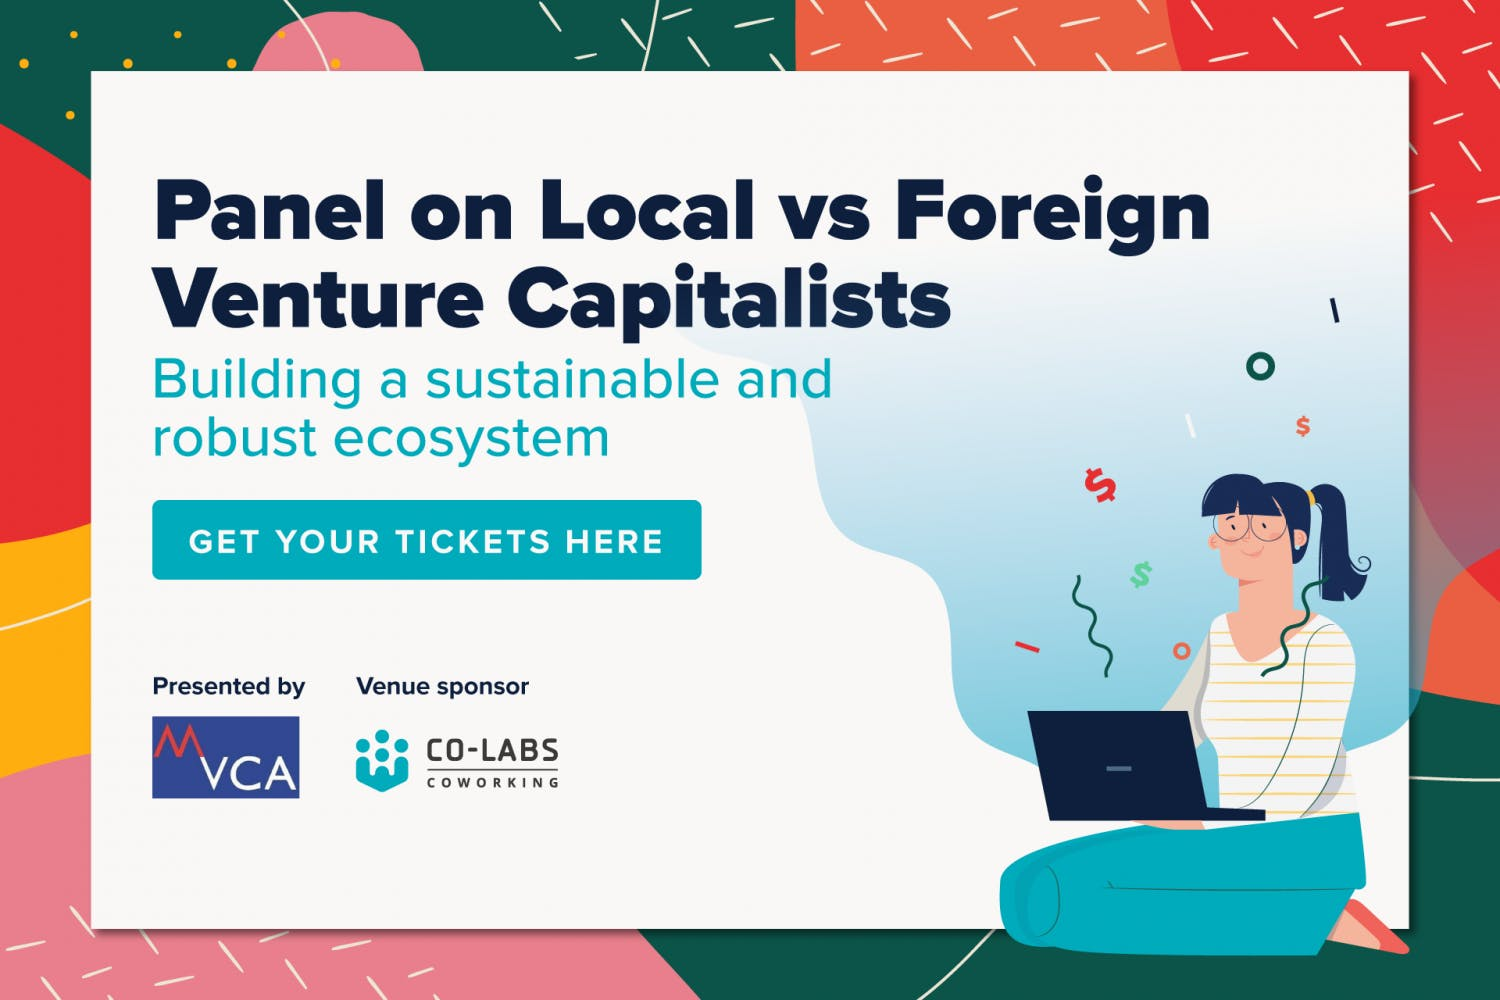 MVCA Presents: Panel on Local vs Foreign Venture Capitalists